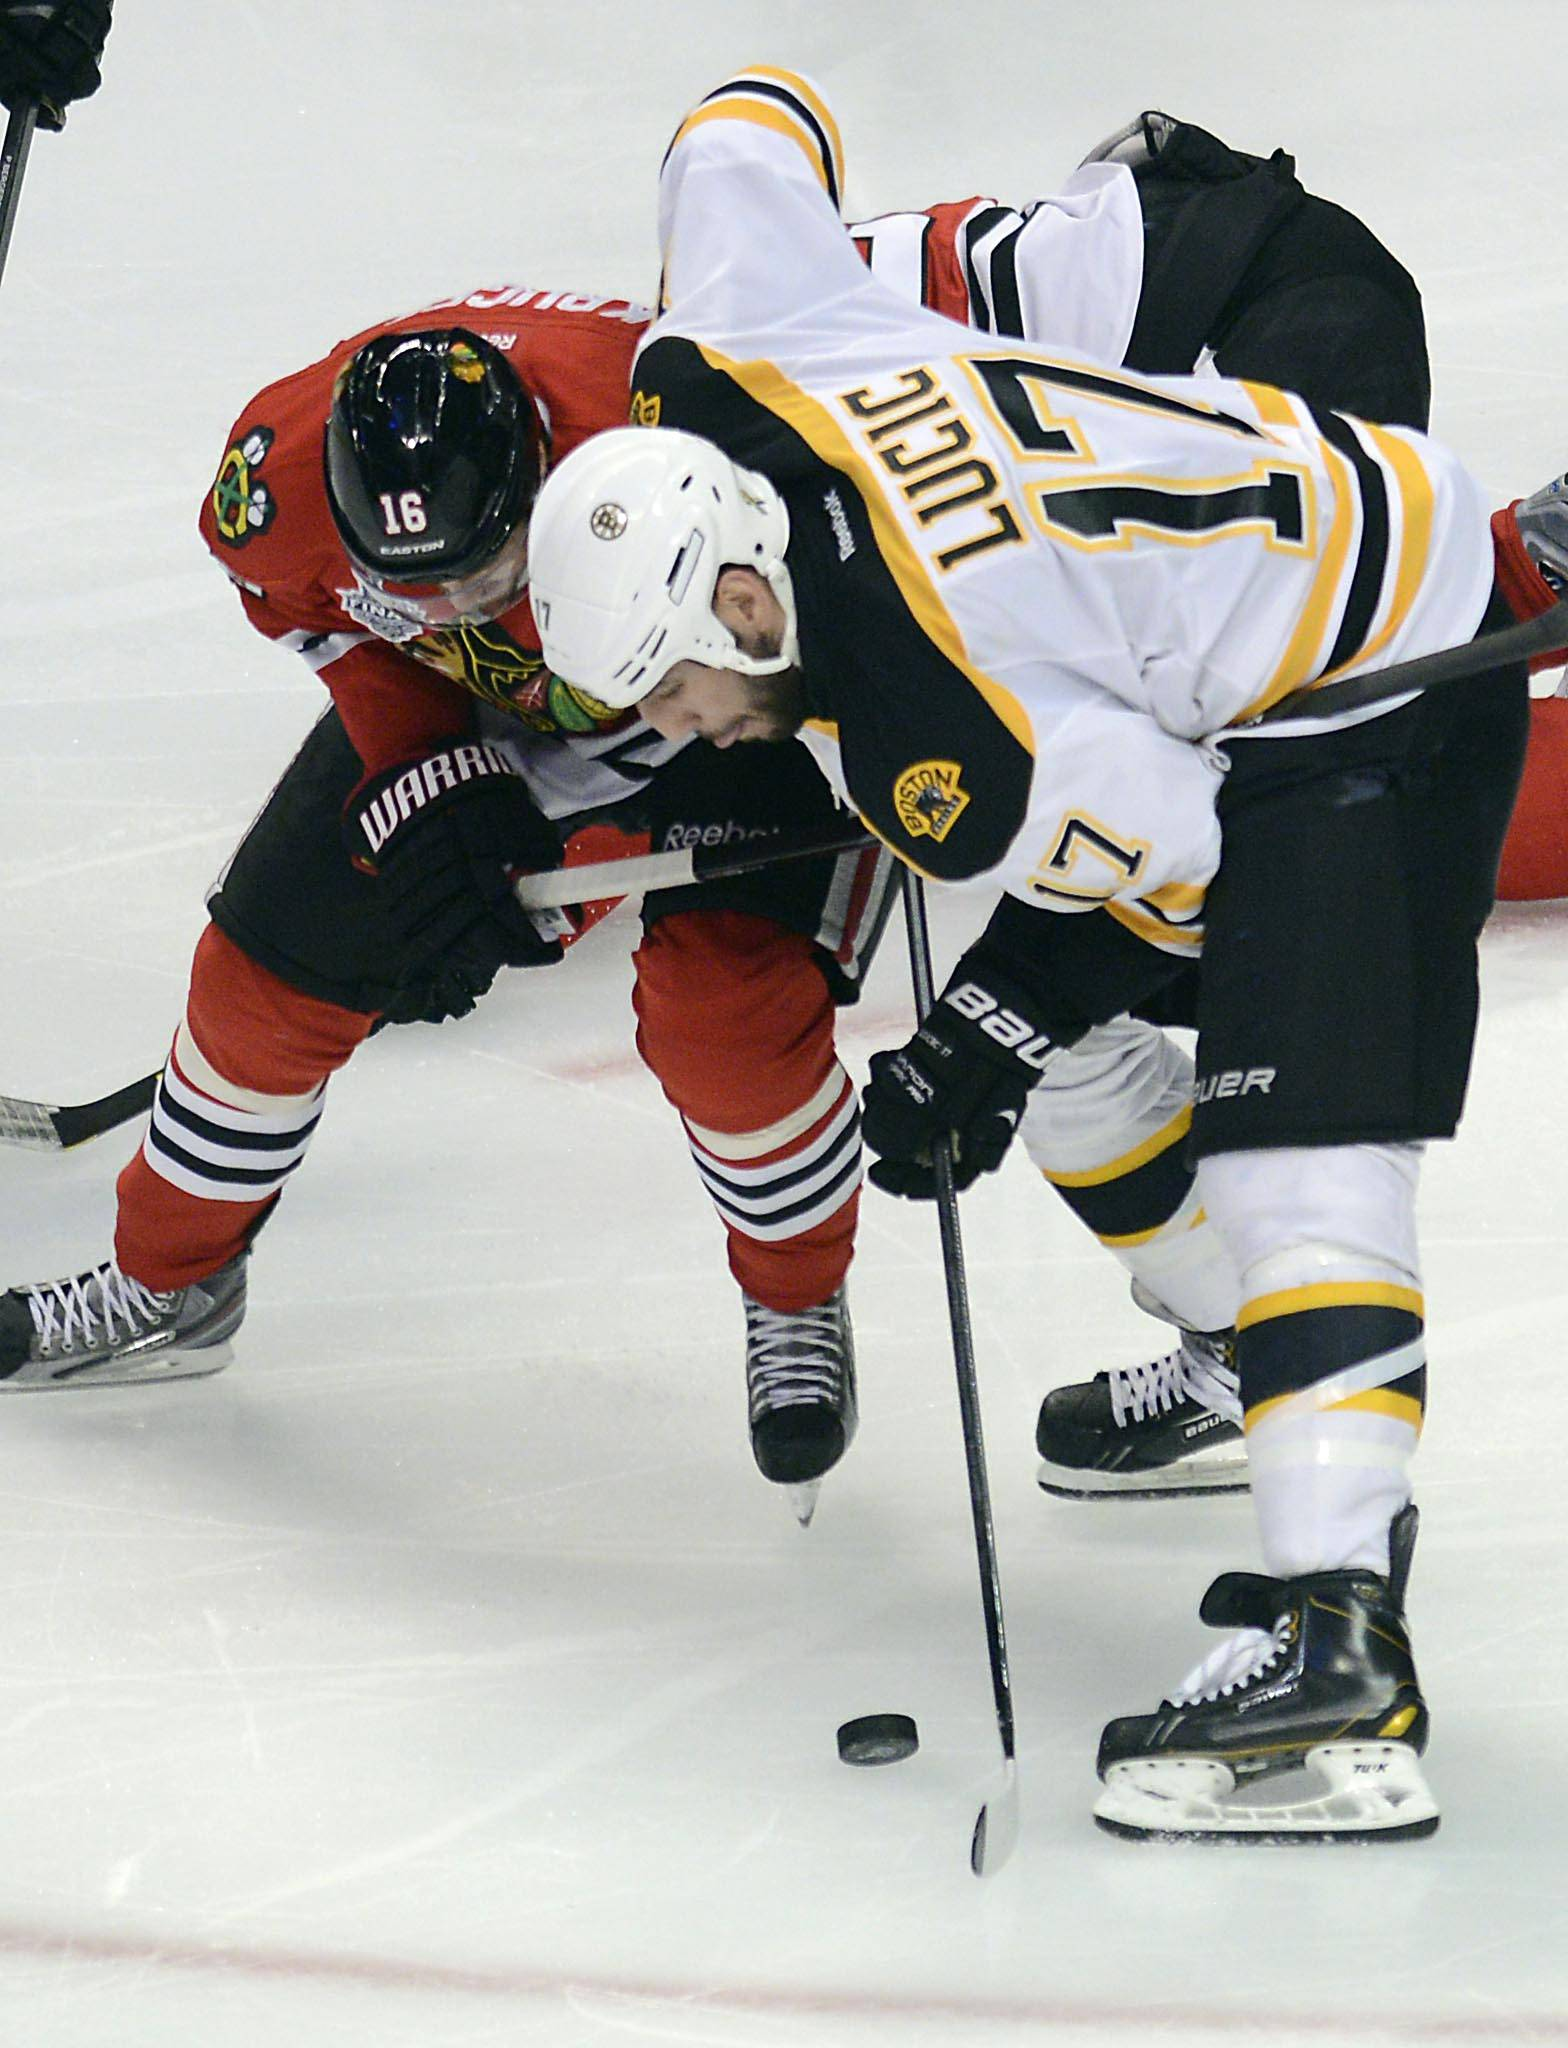 Boston Bruins left wing Milan Lucic andChicago Blackhawks center Marcus Kruger  battle for the puck in the third period during Game 1 of the Stanley Cup Finals Wednesday at the Untied Center in Chicago.